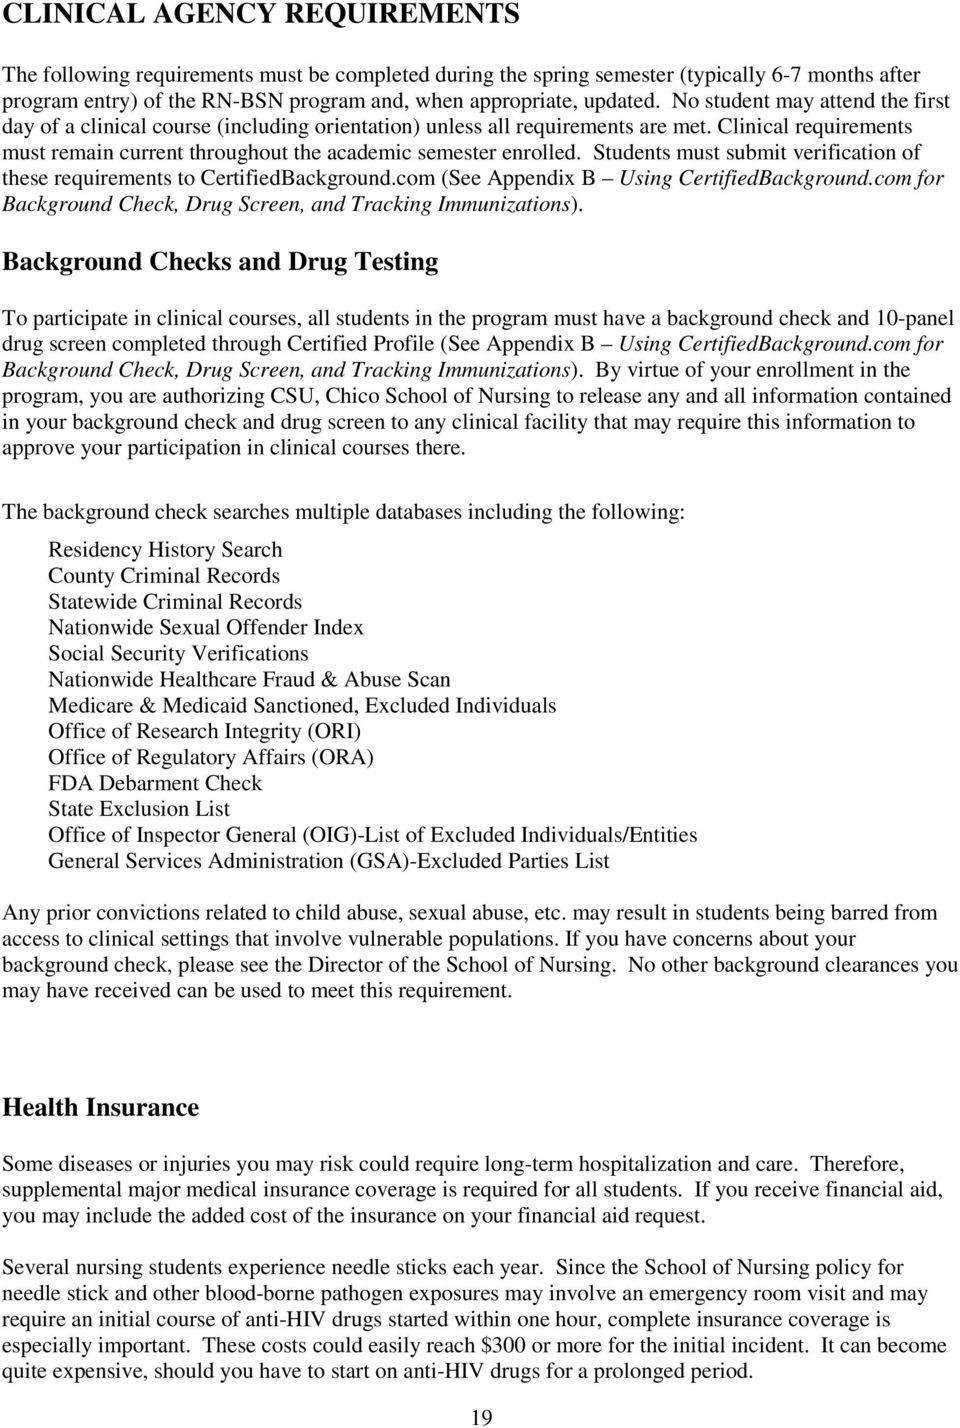 Students must submit verification of these requirements to CertifiedBackground.com (See Appendix B Using CertifiedBackground.com for Background Check, Drug Screen, and Tracking Immunizations).